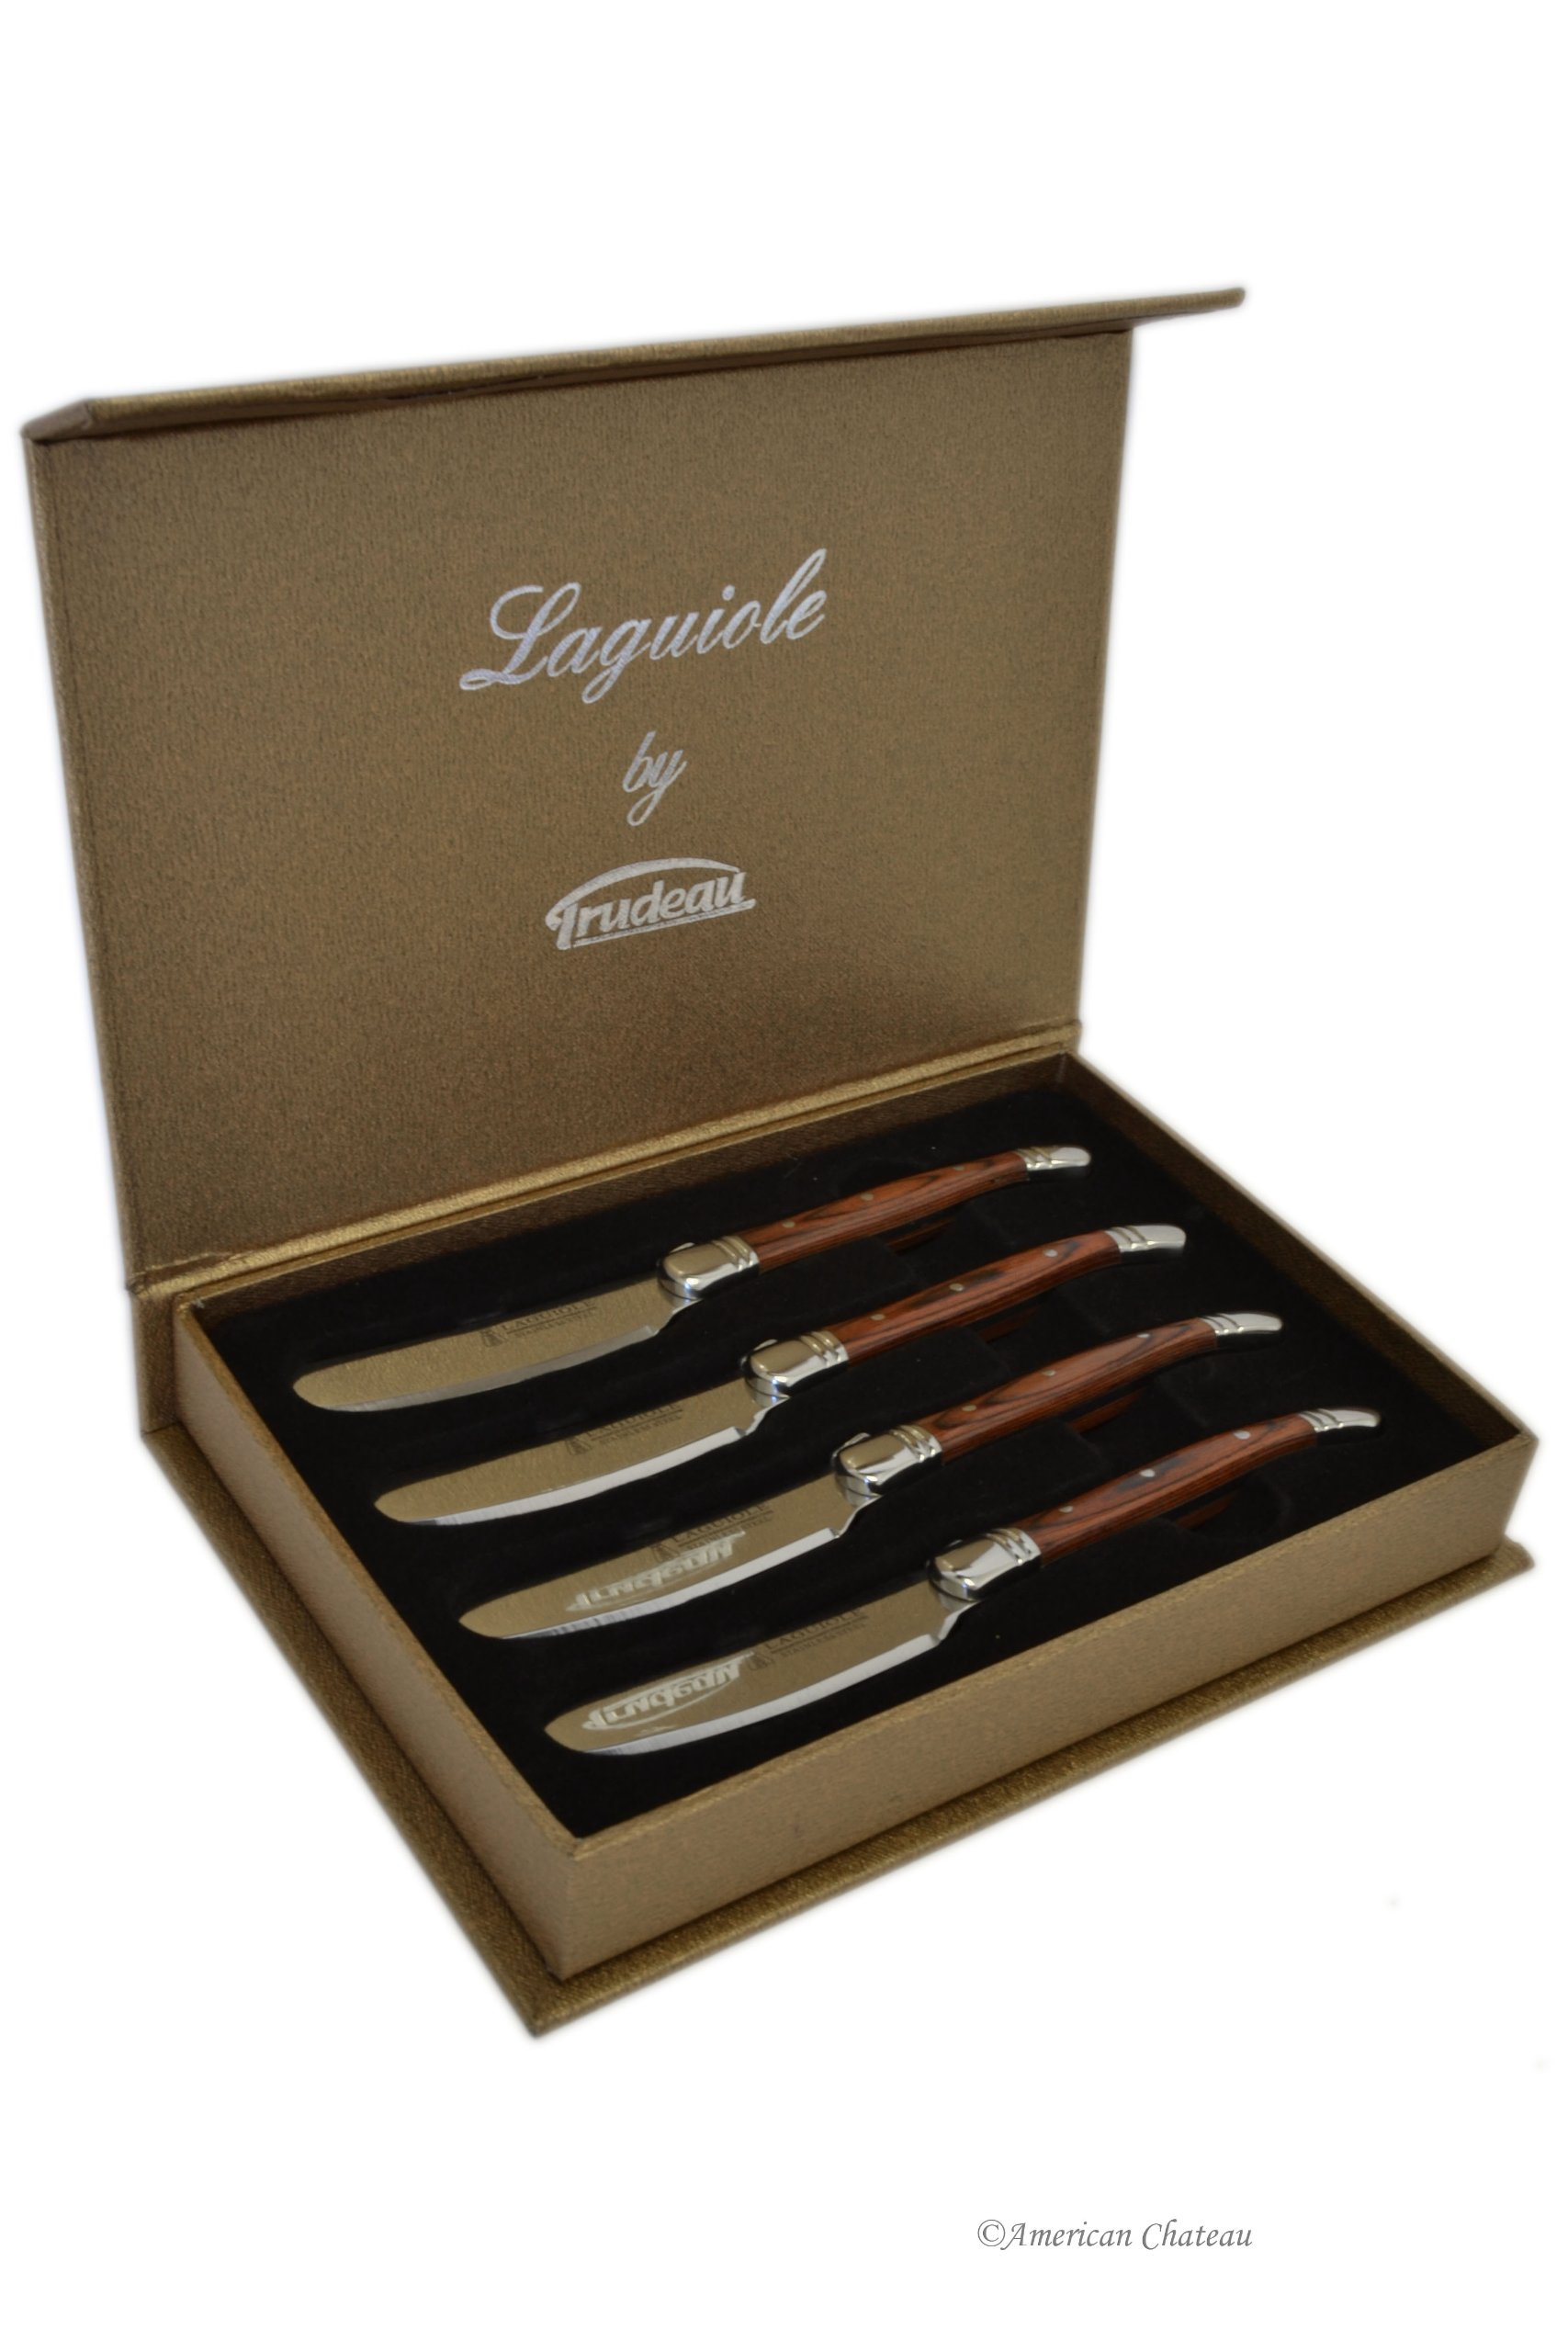 Set 4 Laguiole Stainless Steel & Pakka Wood Butter/Cheese Spreaders - Gift Boxed